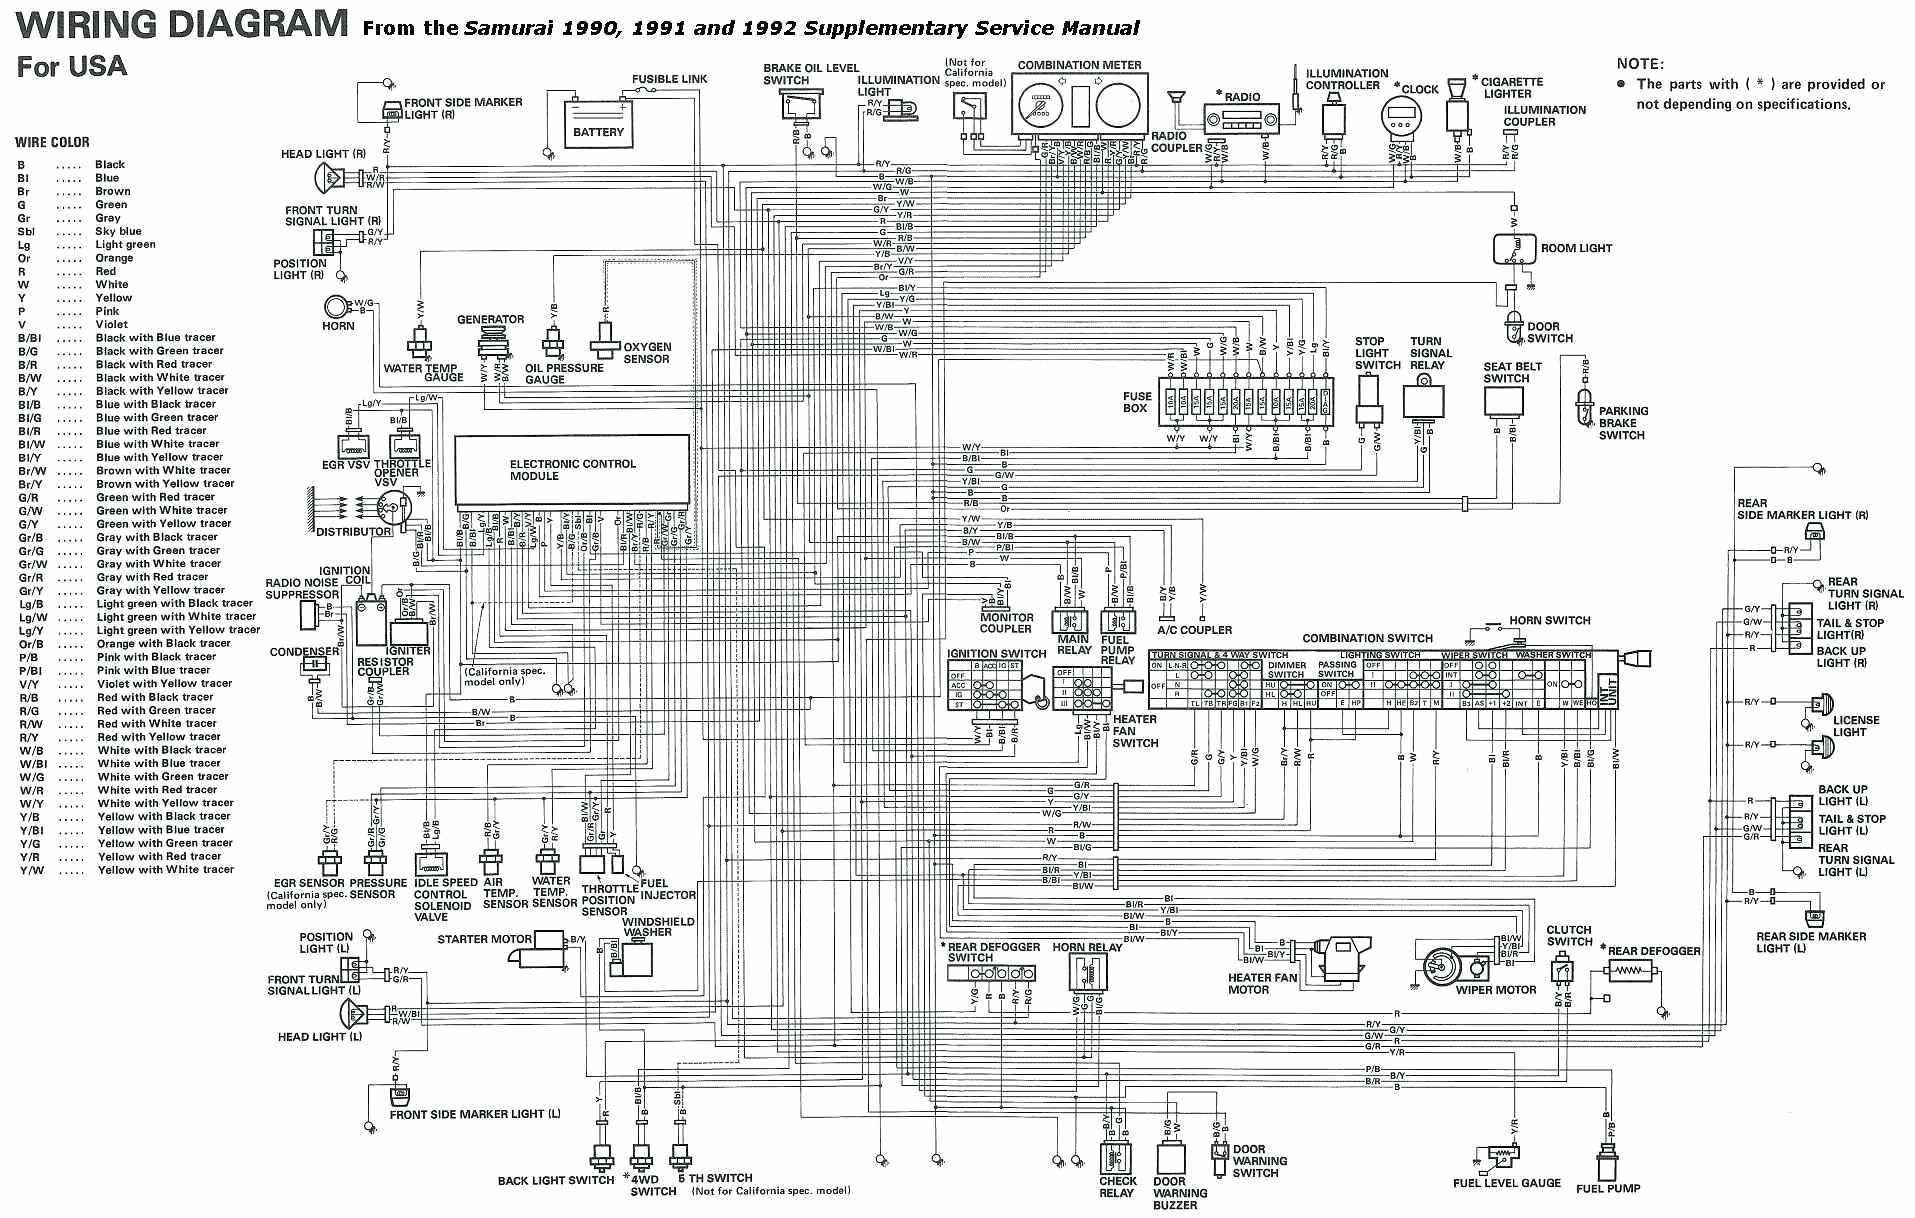 daihatsu mira wiring diagram car manuals diagrams fault codes inside daihatsu move wiring diagram daihatsu mira [ 1915 x 1218 Pixel ]